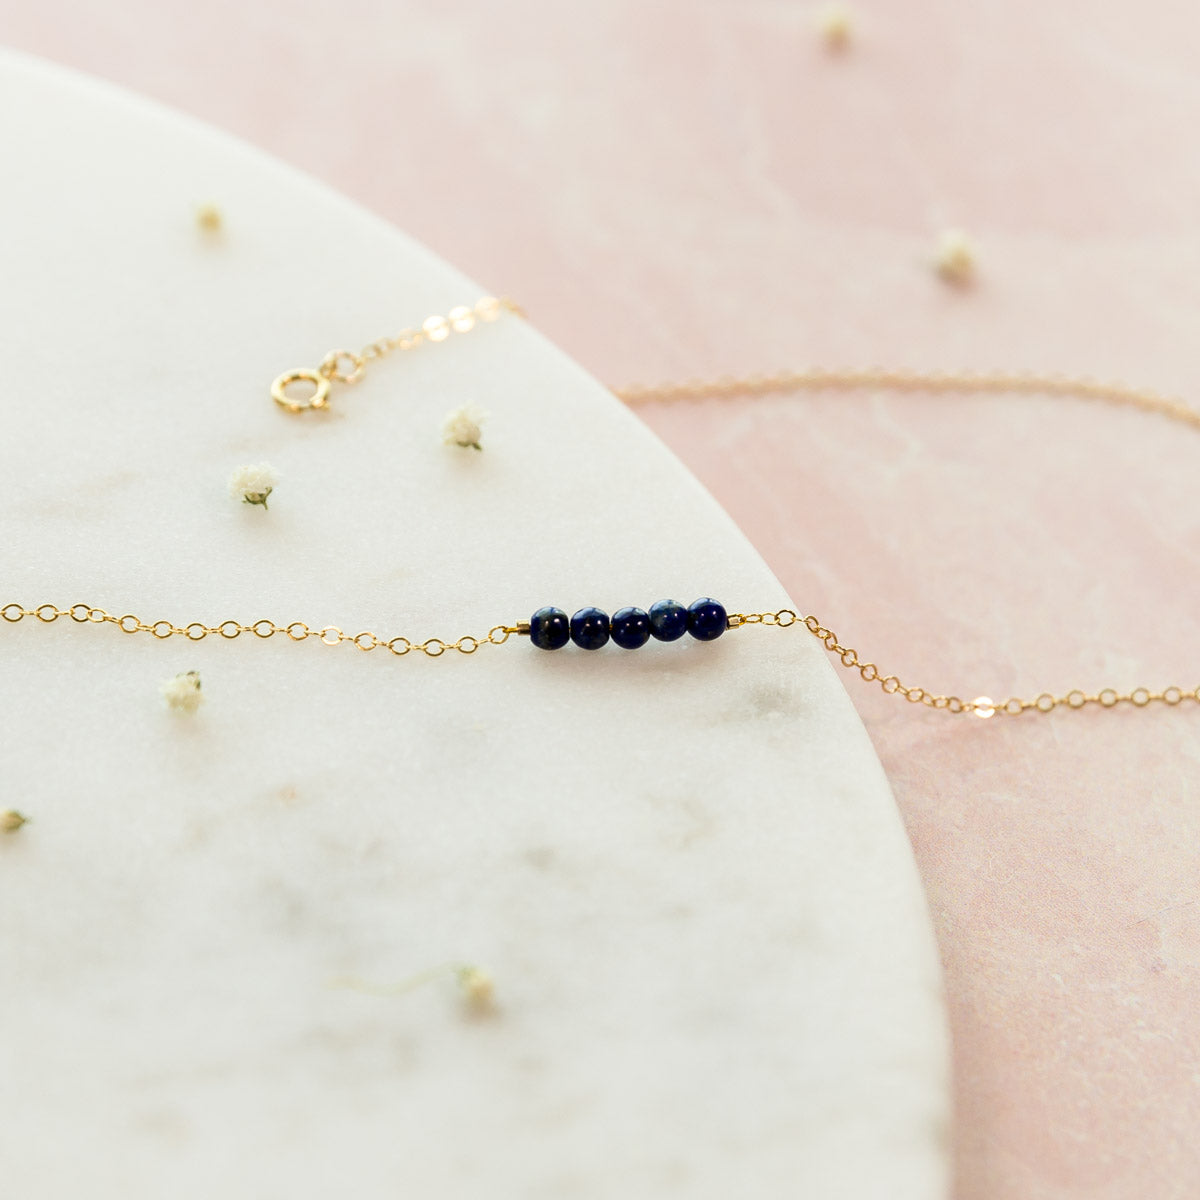 Lapis Lazuli Jewelry, Lapis Anklet, Lapis Lazuli Ankle Bracelet, Crystal Anklet, Healing Crystal Jewelry, December Birthstone Gift For Her, Dainty Celestial  Ankle Bracelet, Minimal Anklet, Bohemian, Gemstone Crystal Anklet, Summer Accessories, Liz.Beth Jewelry Co.